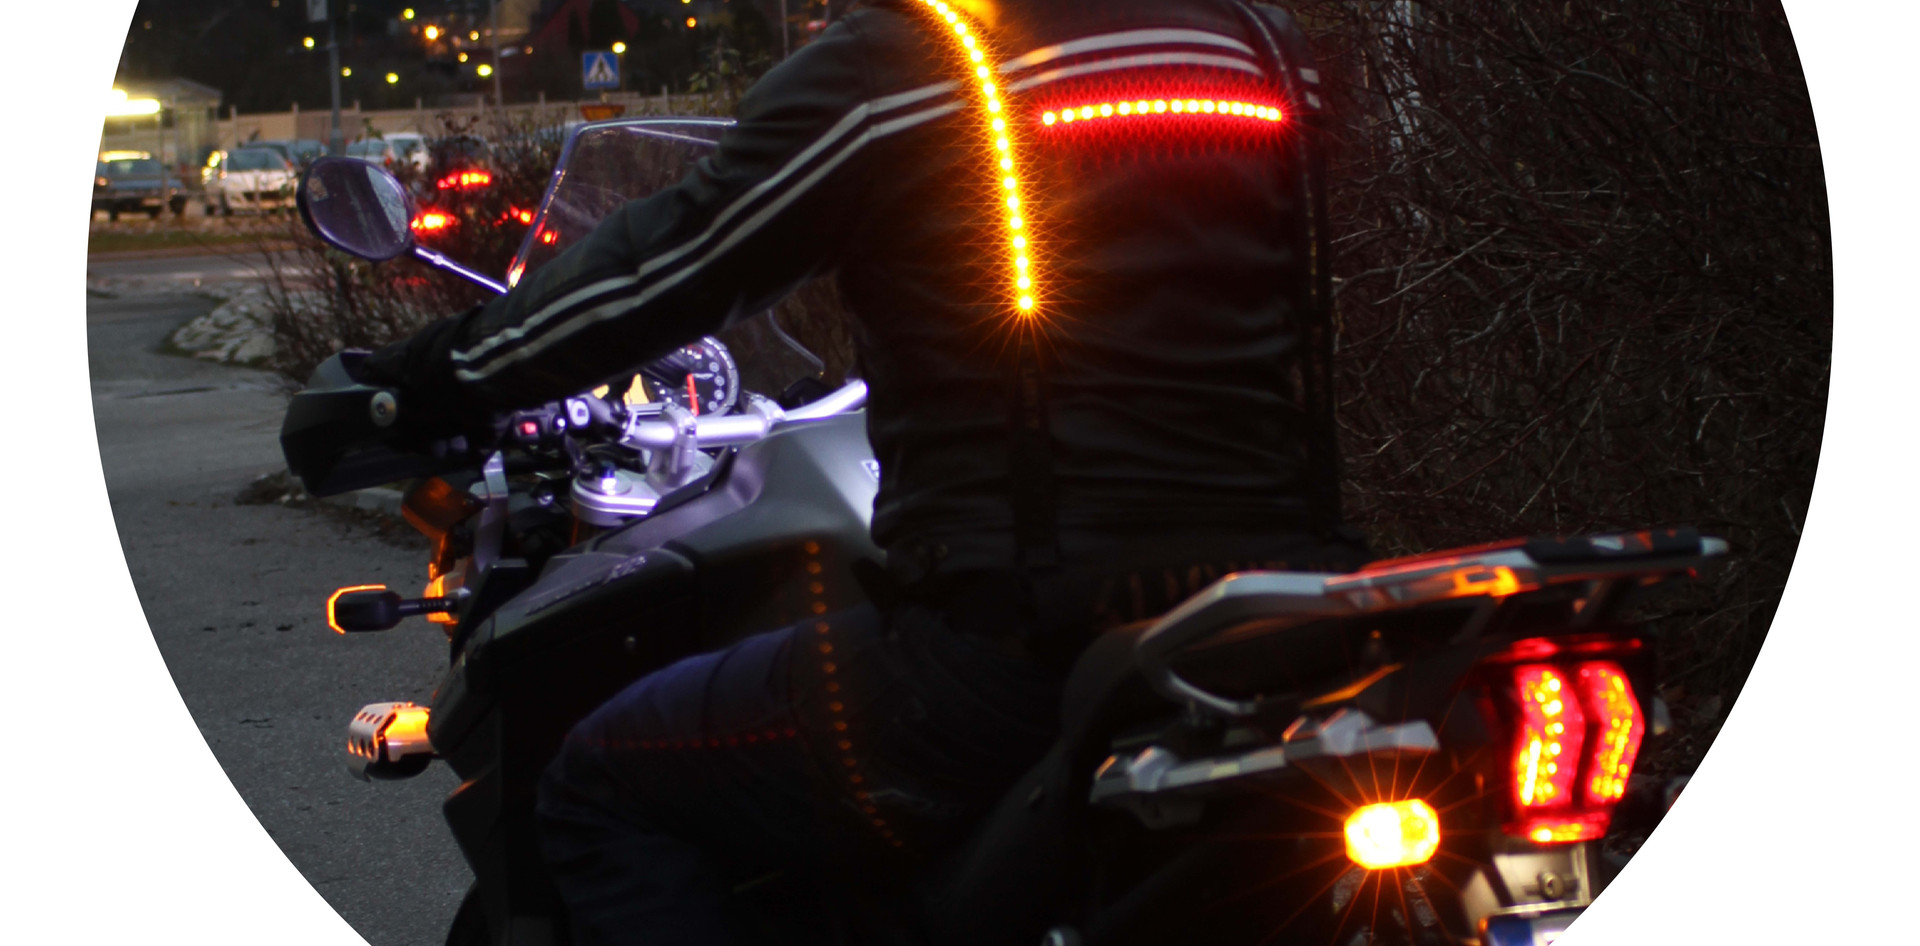 Biker LED Sele - 4light AB.jpg